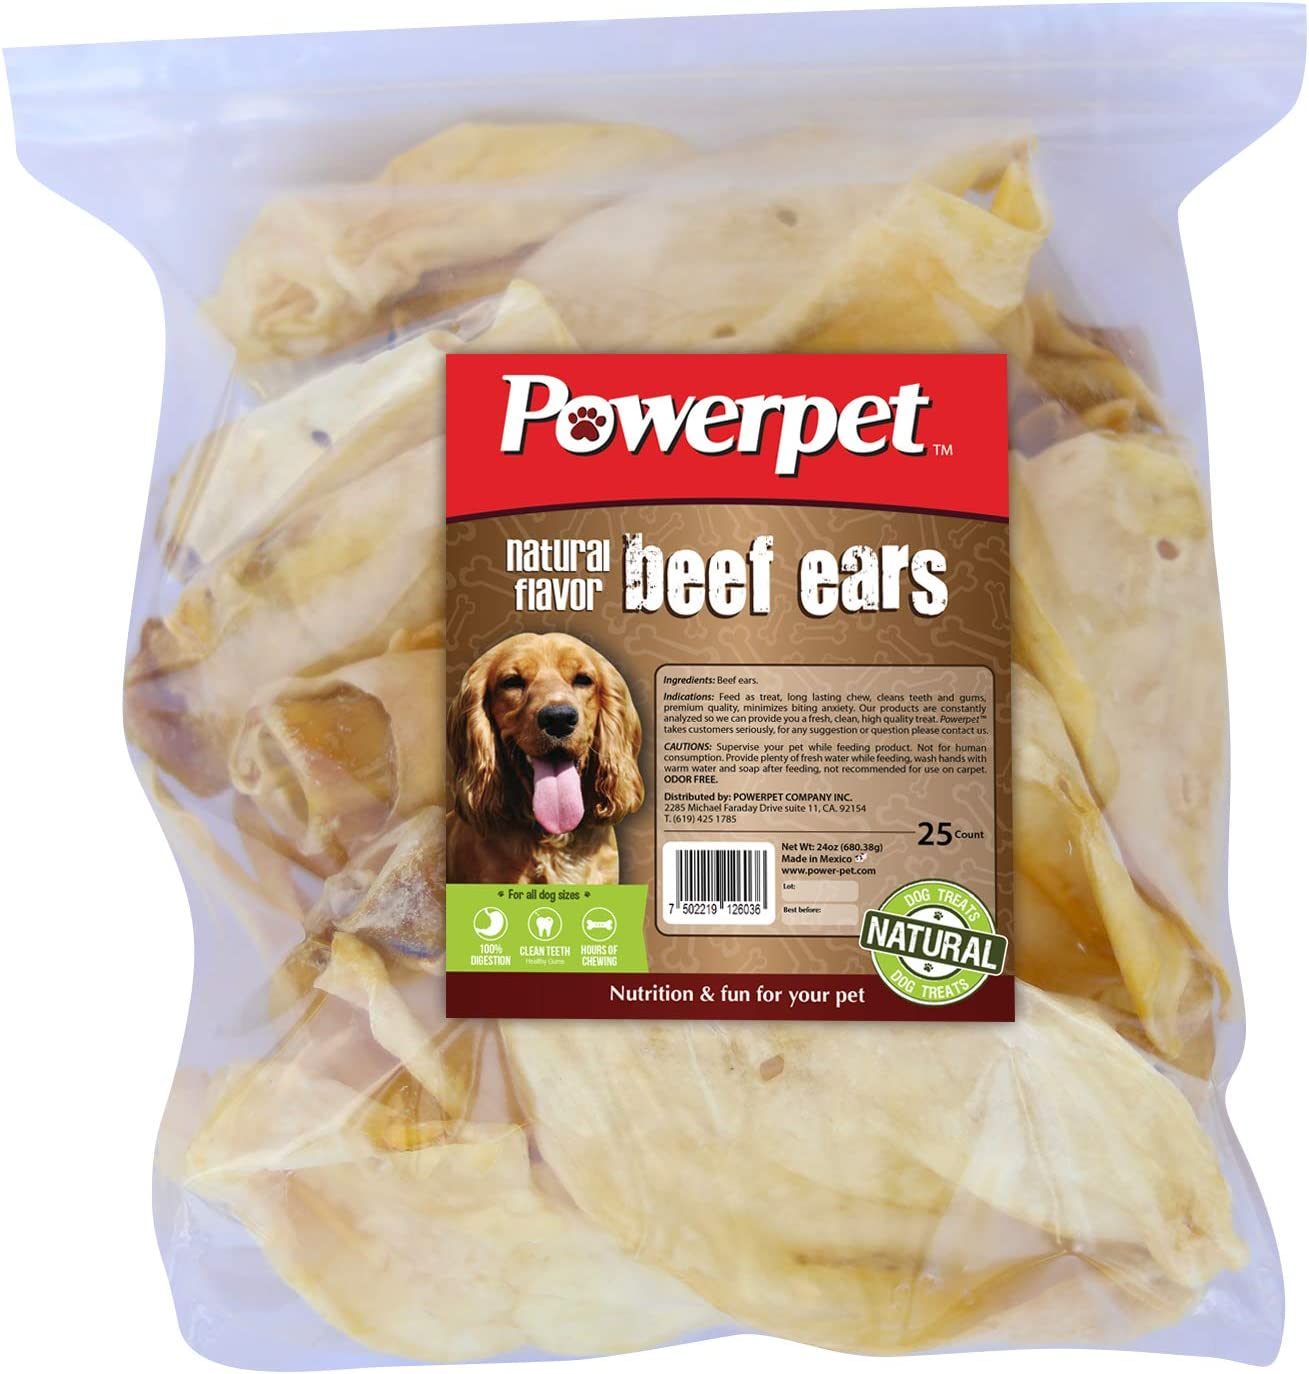 Powerpet 100% Natural Limited Super-cheap time trial price Cow Ears 25 Count for Dogs